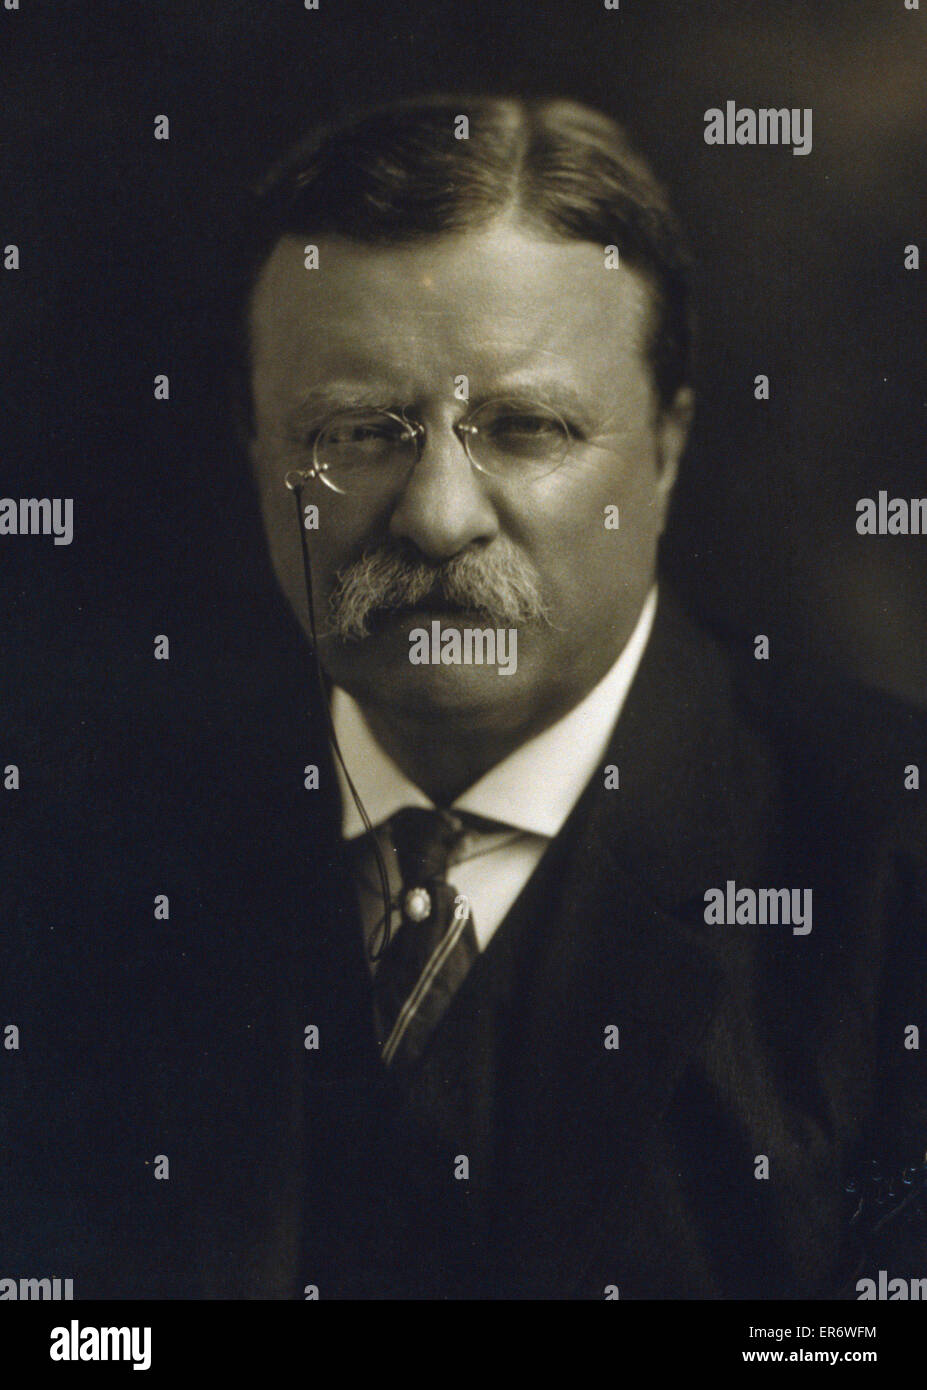 Theodore Teddy Roosevelt, American President, portrait 15th August 1913 - Stock Image